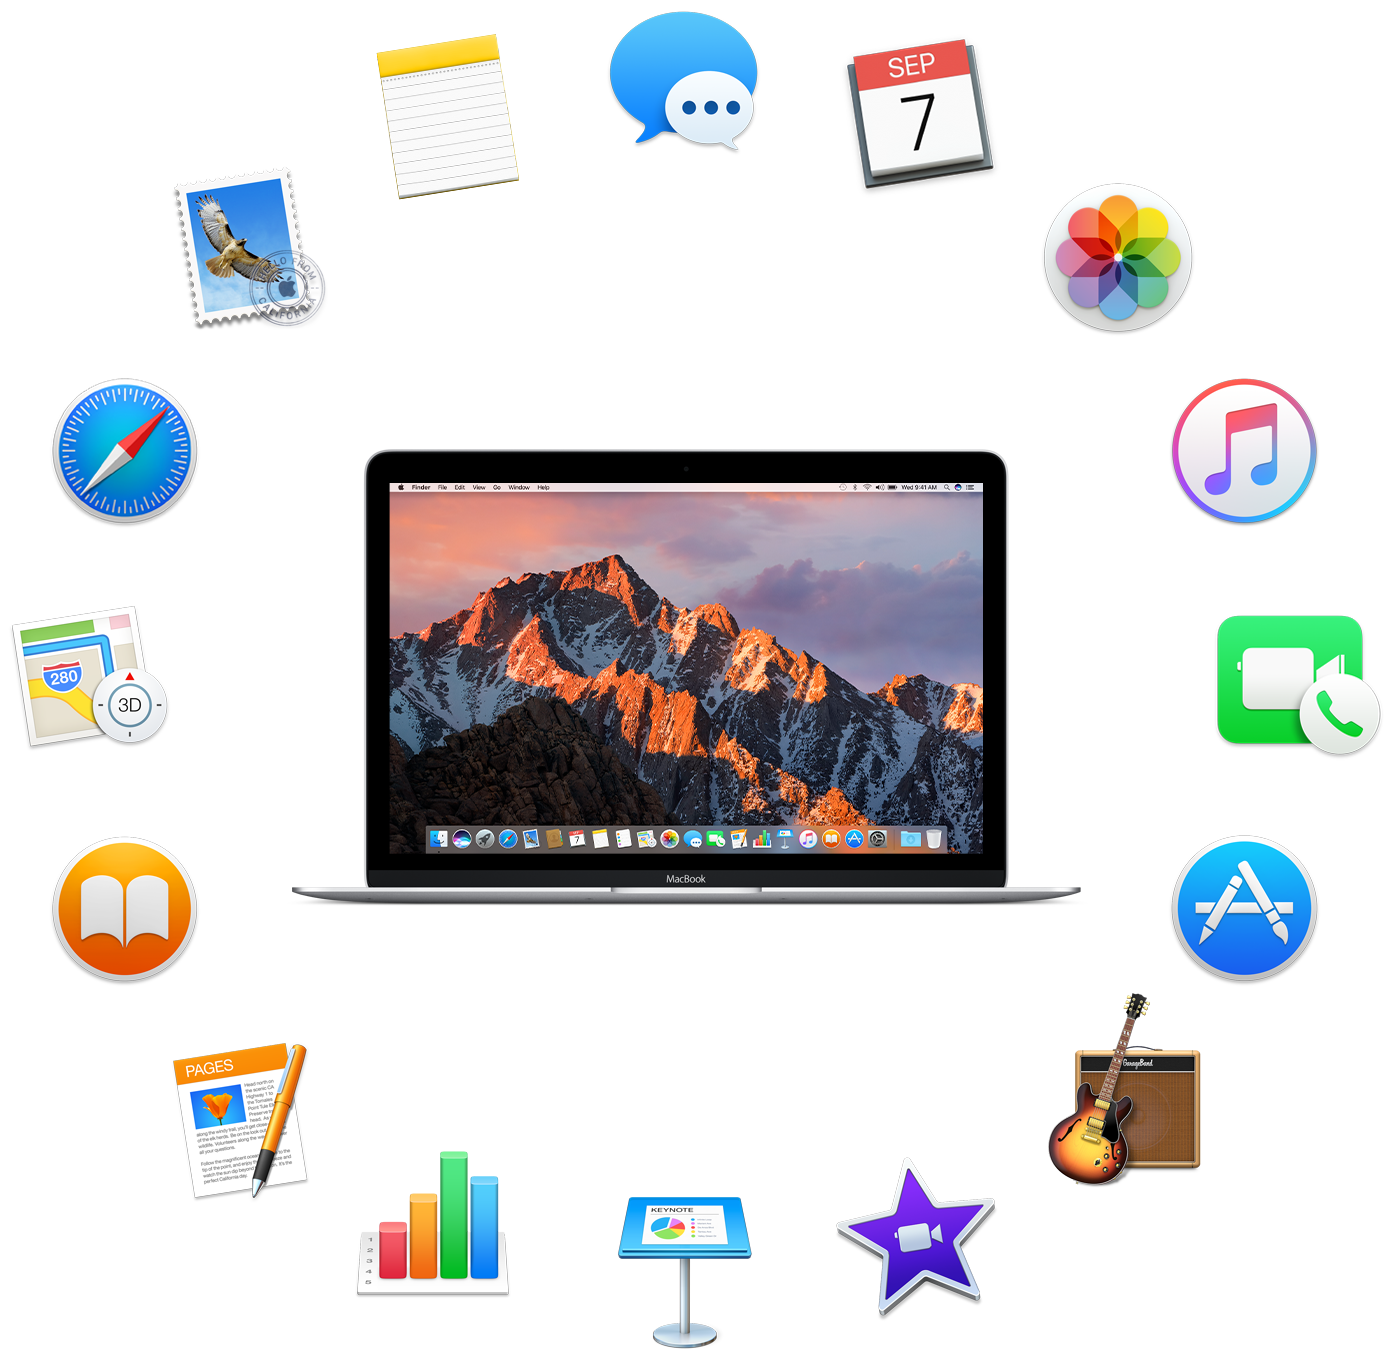 A MacBook surrounded by the icons for the apps that come installed and are described in the following sections.